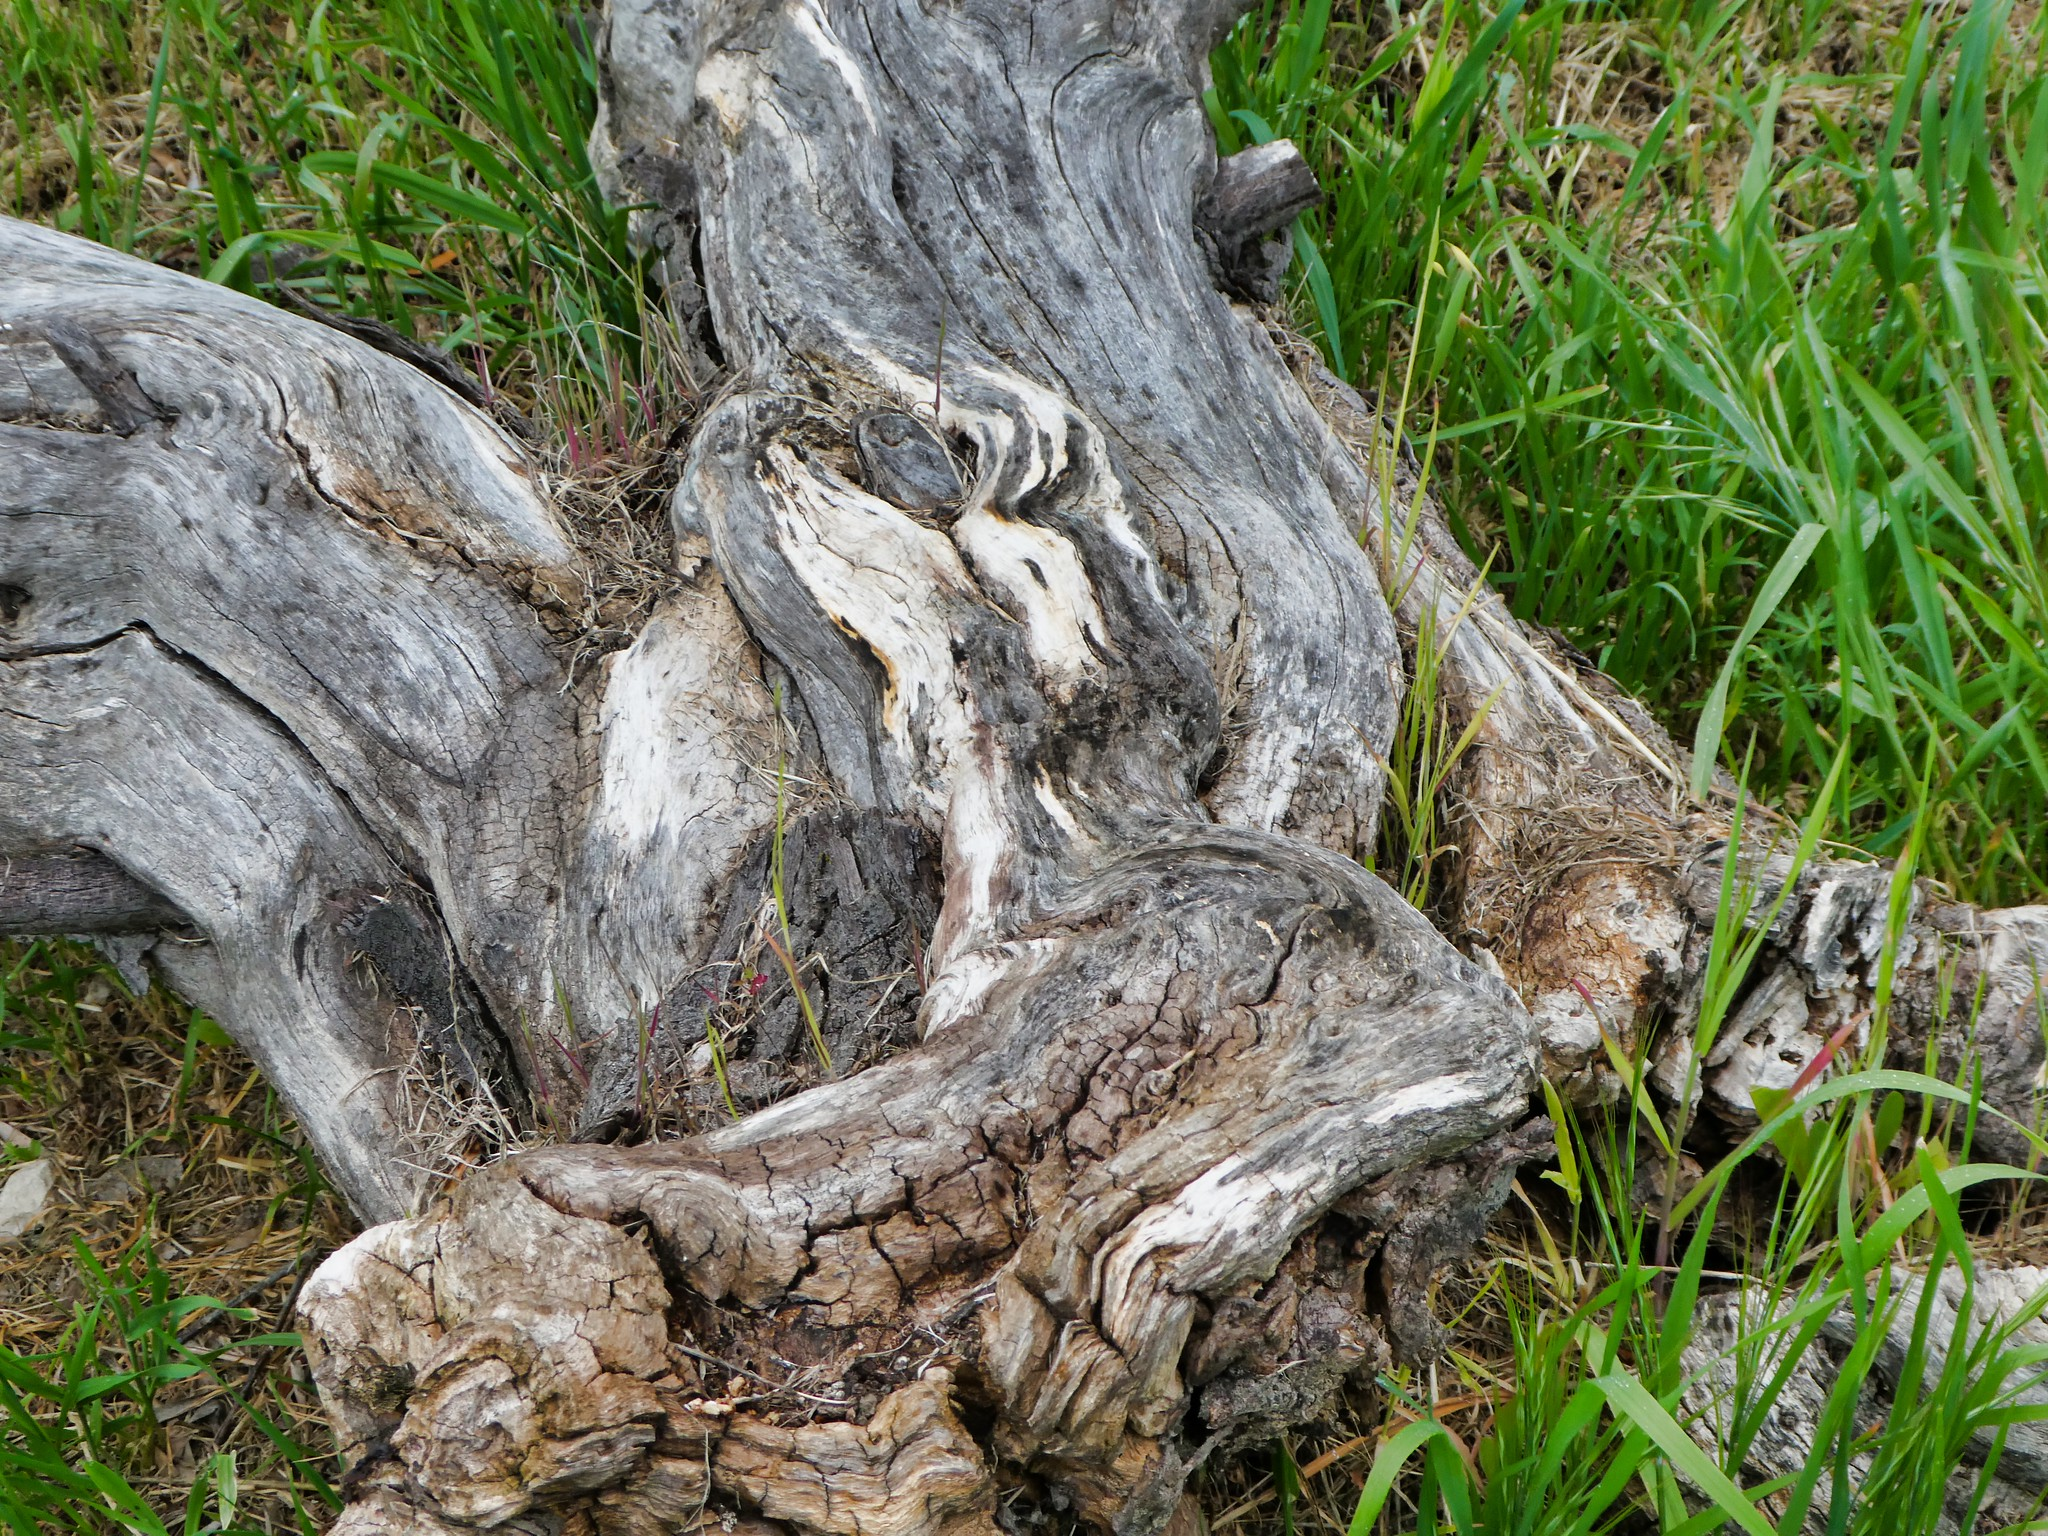 2019-03-22 - Nature Photography - Trees - Special Tree Trunk